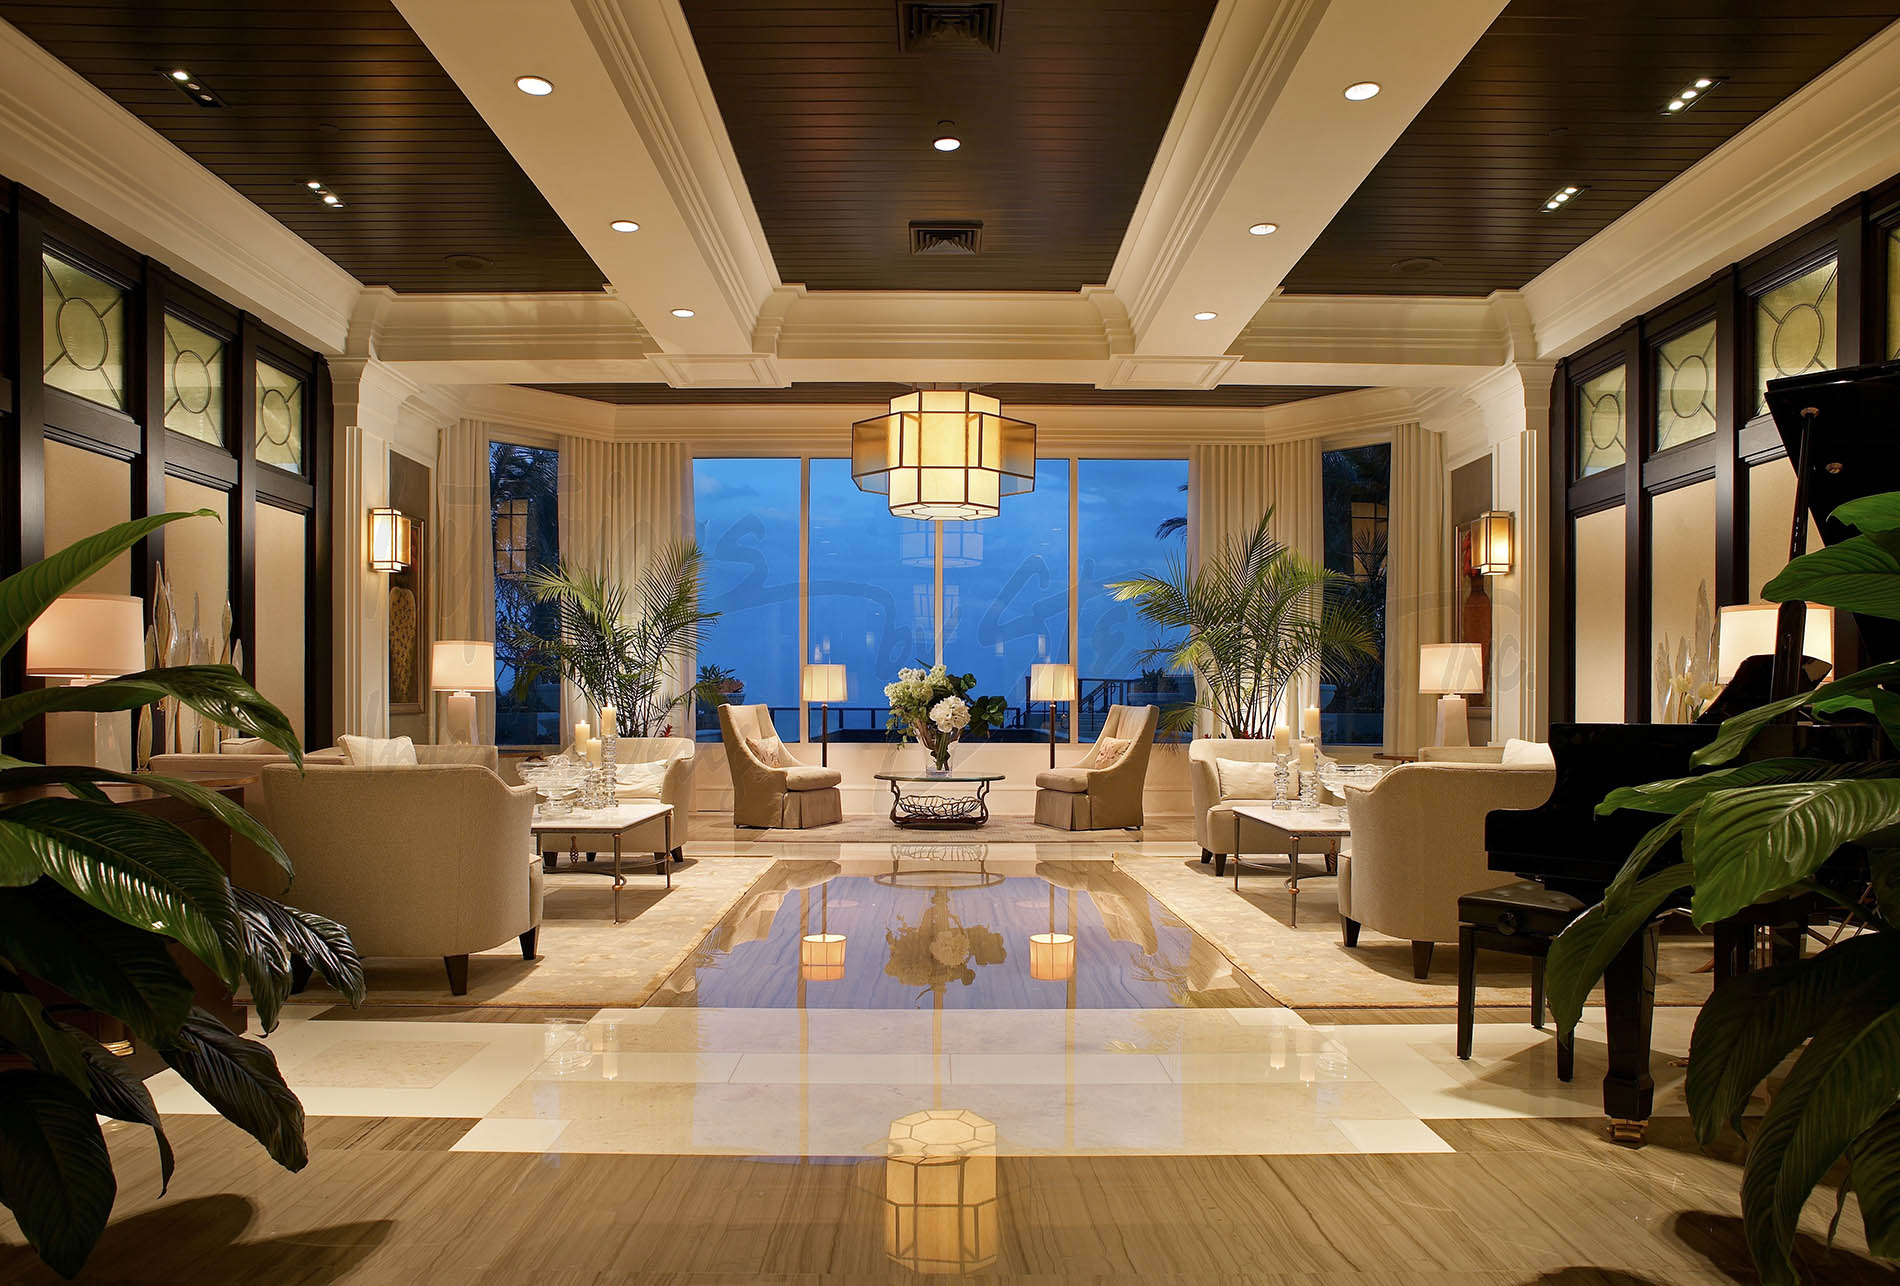 Ritz Carlton Residences Designs Interiors by Steven G